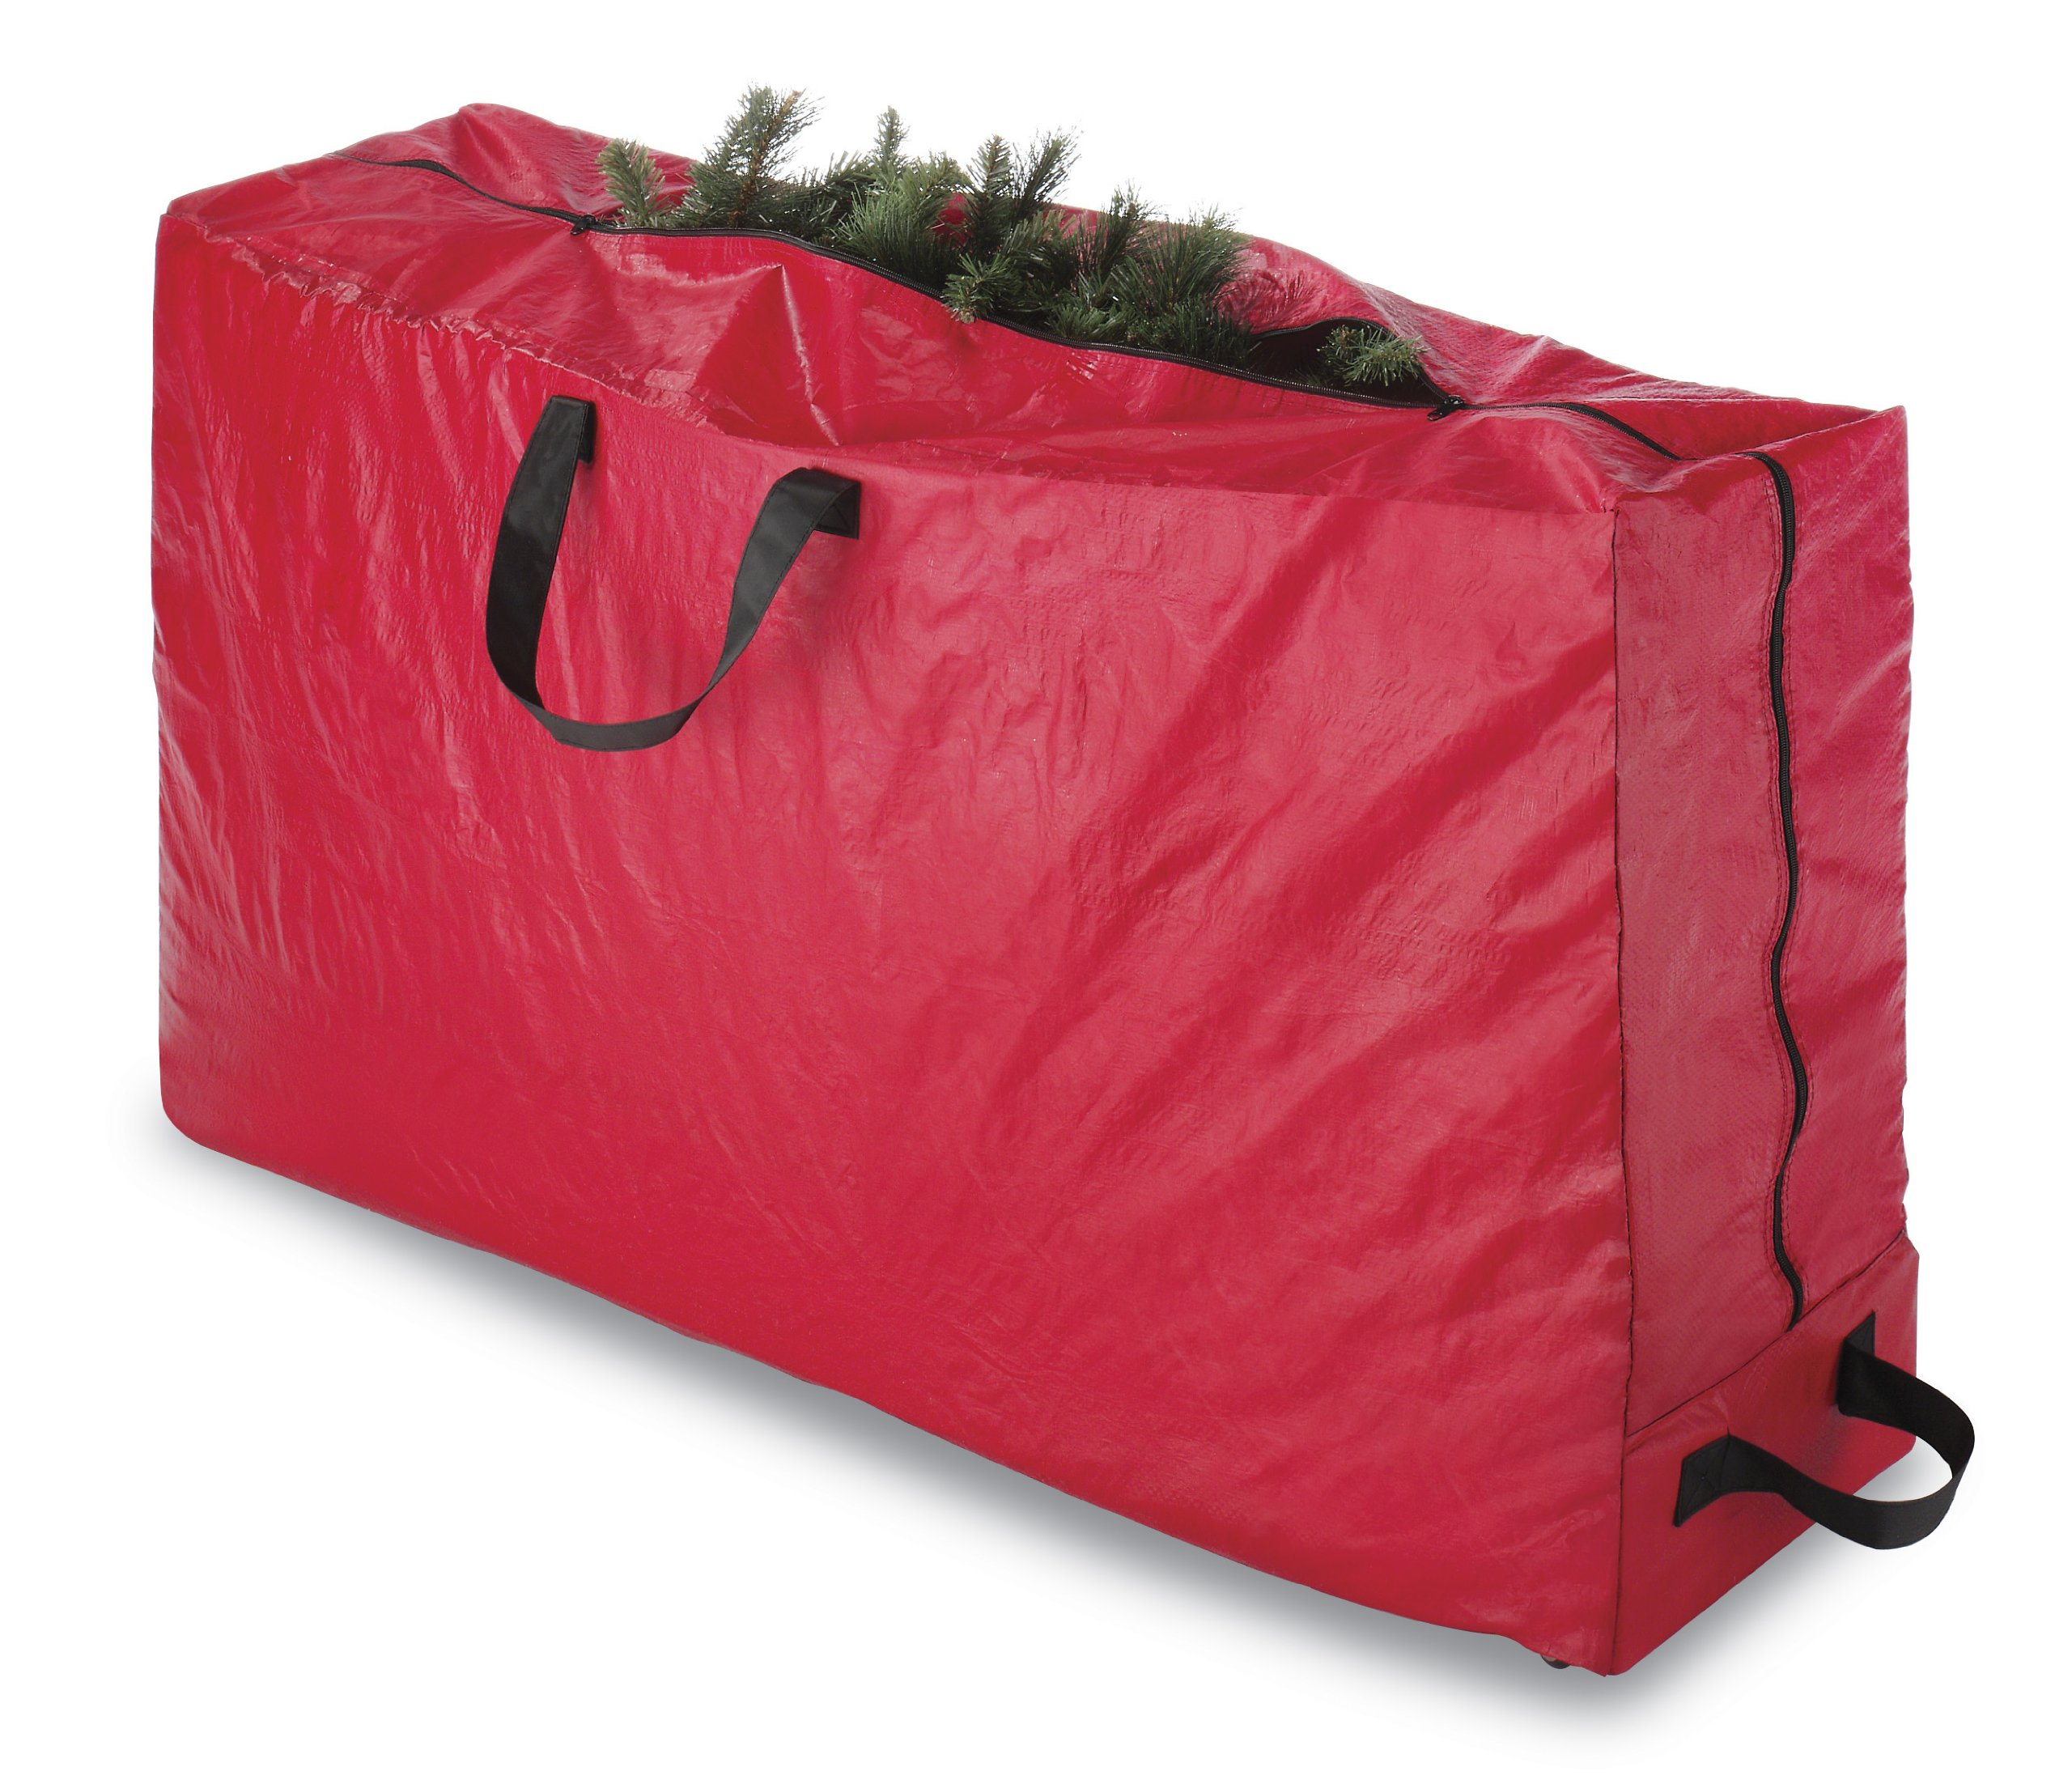 Whitmor Christmas Storage Collection Christmas Tree Bag with Wheels